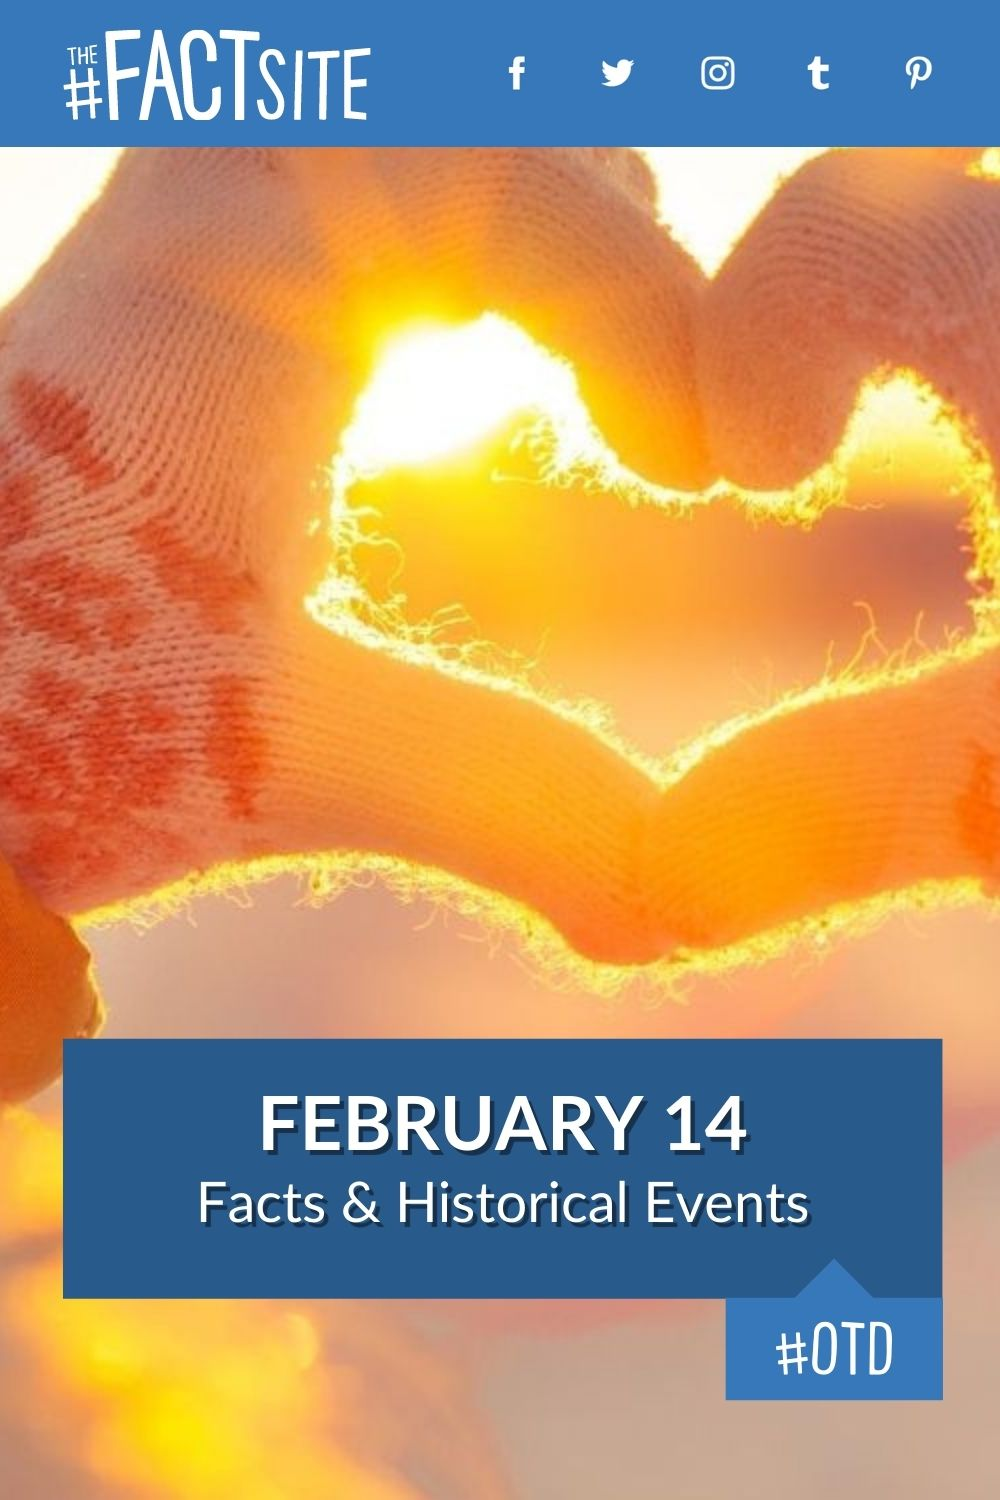 Facts & Historic Events That Happened on February 14